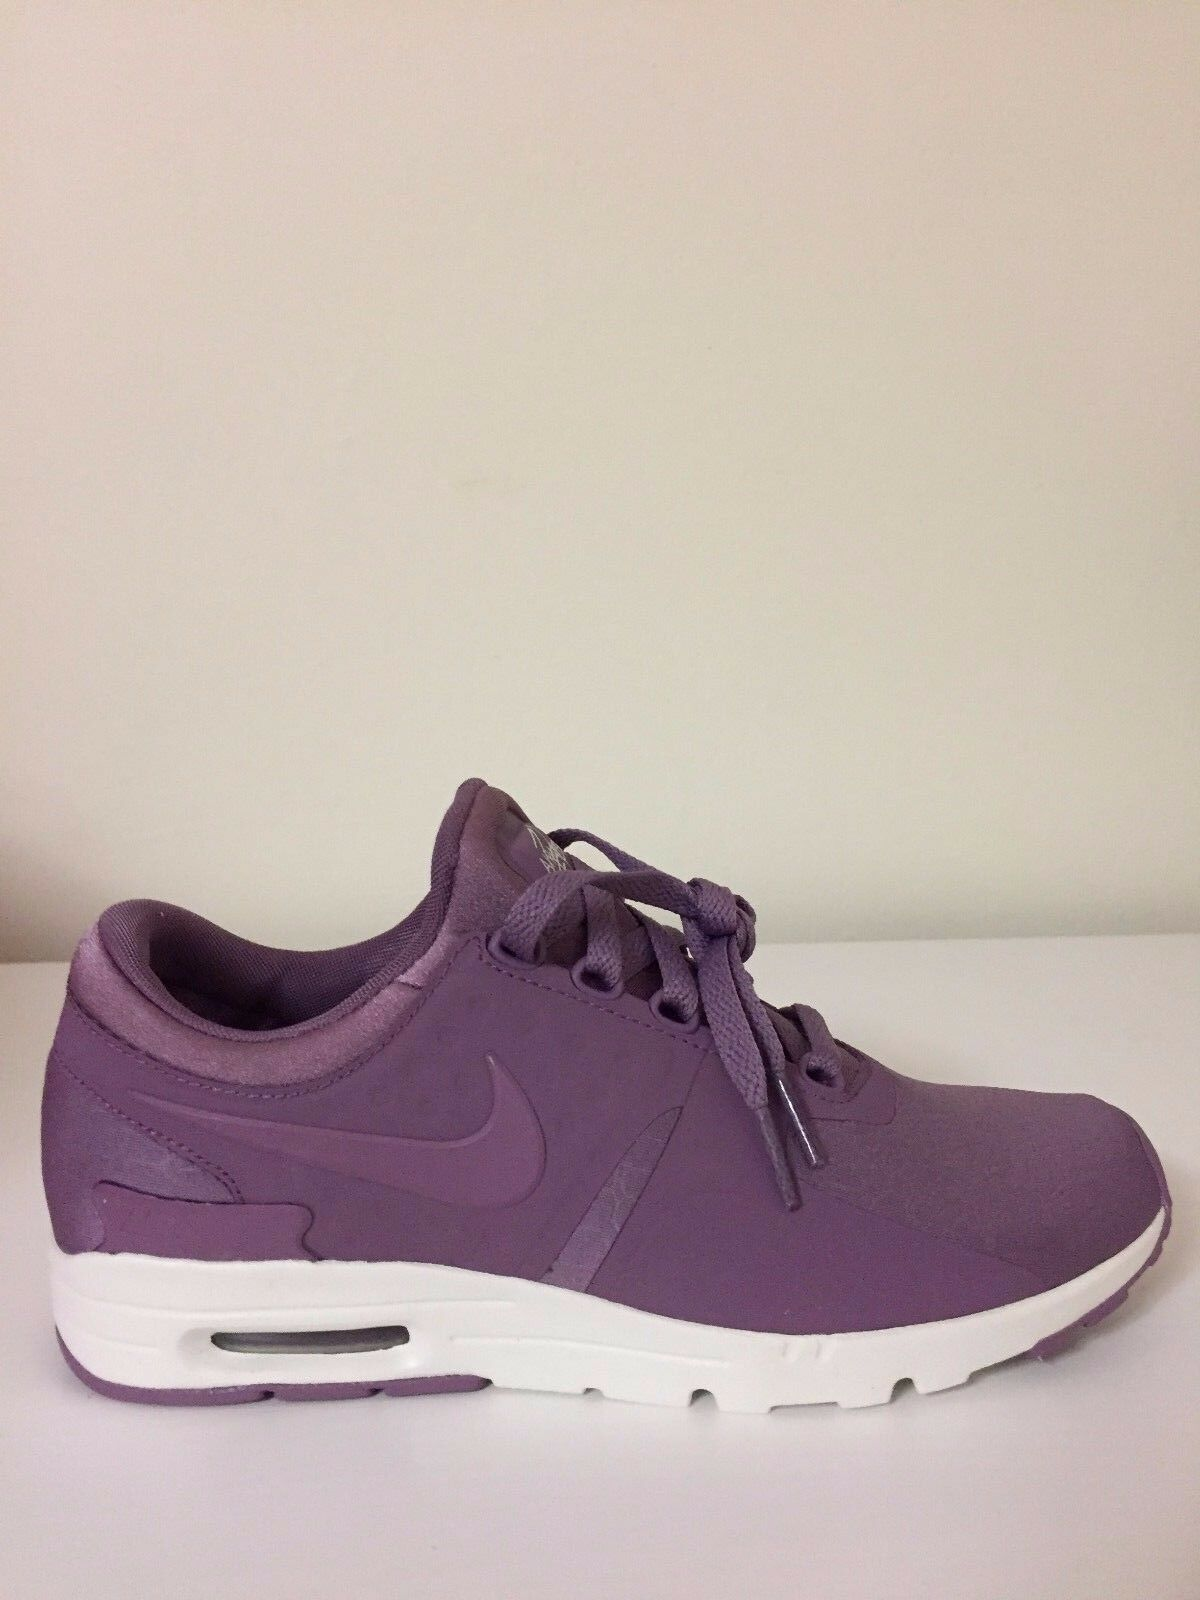 Nike Air Max Zero Premium 903837-003 Purple Wmn Sz 7